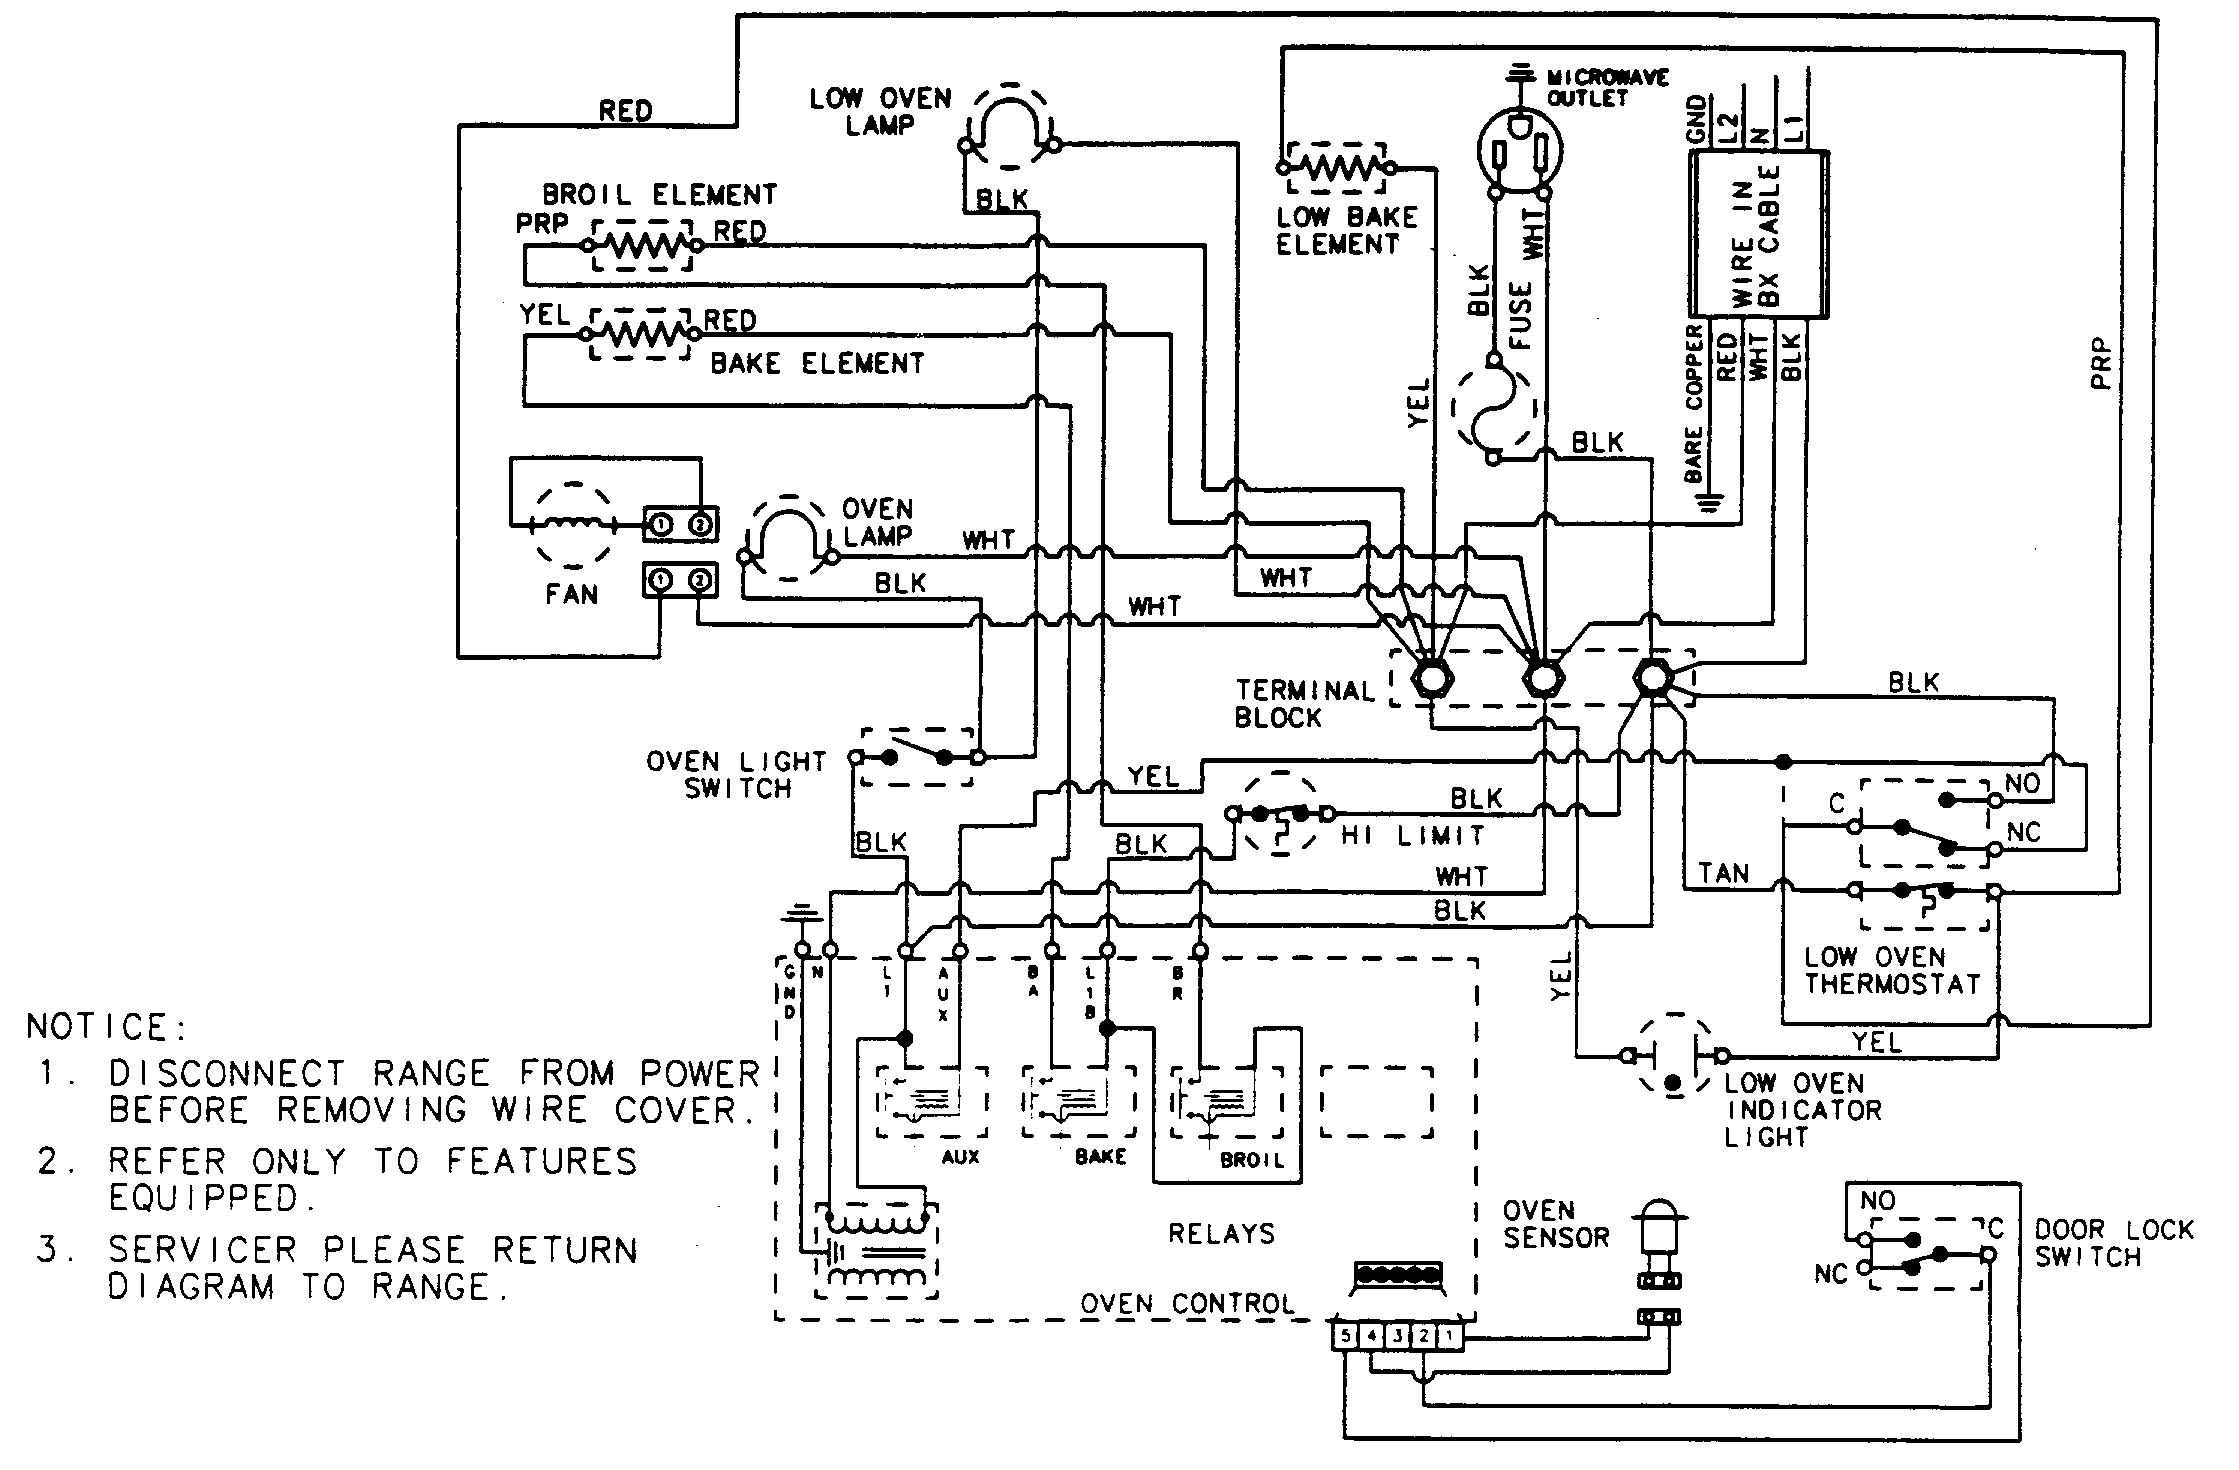 wiring information parts oven wiring diagram electric oven wiring diagram \u2022 wiring diagrams hotpoint oven wiring diagram at n-0.co